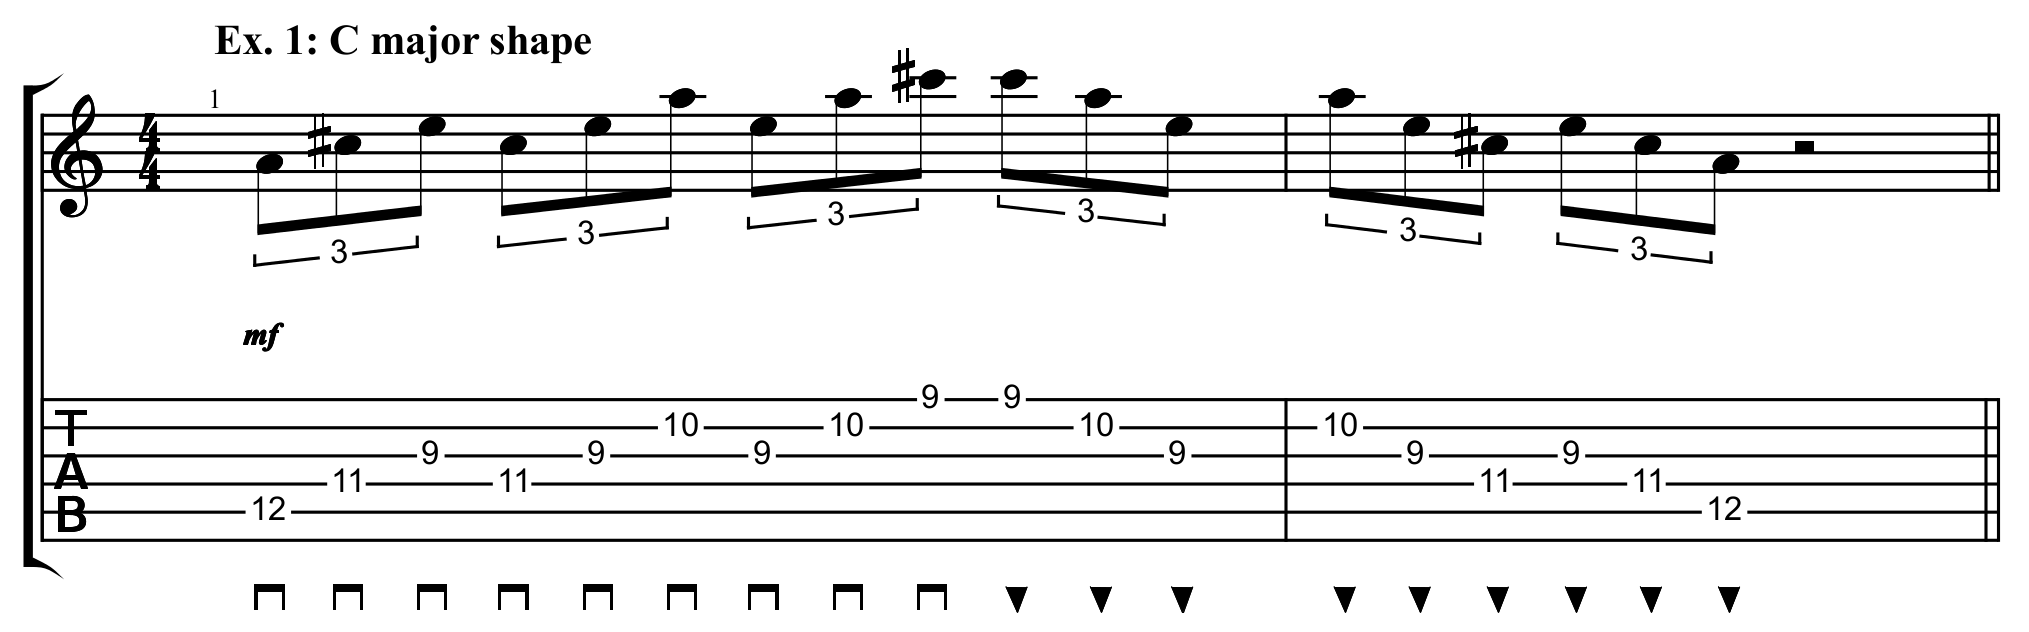 C major shaped sweep arpeggio exercise